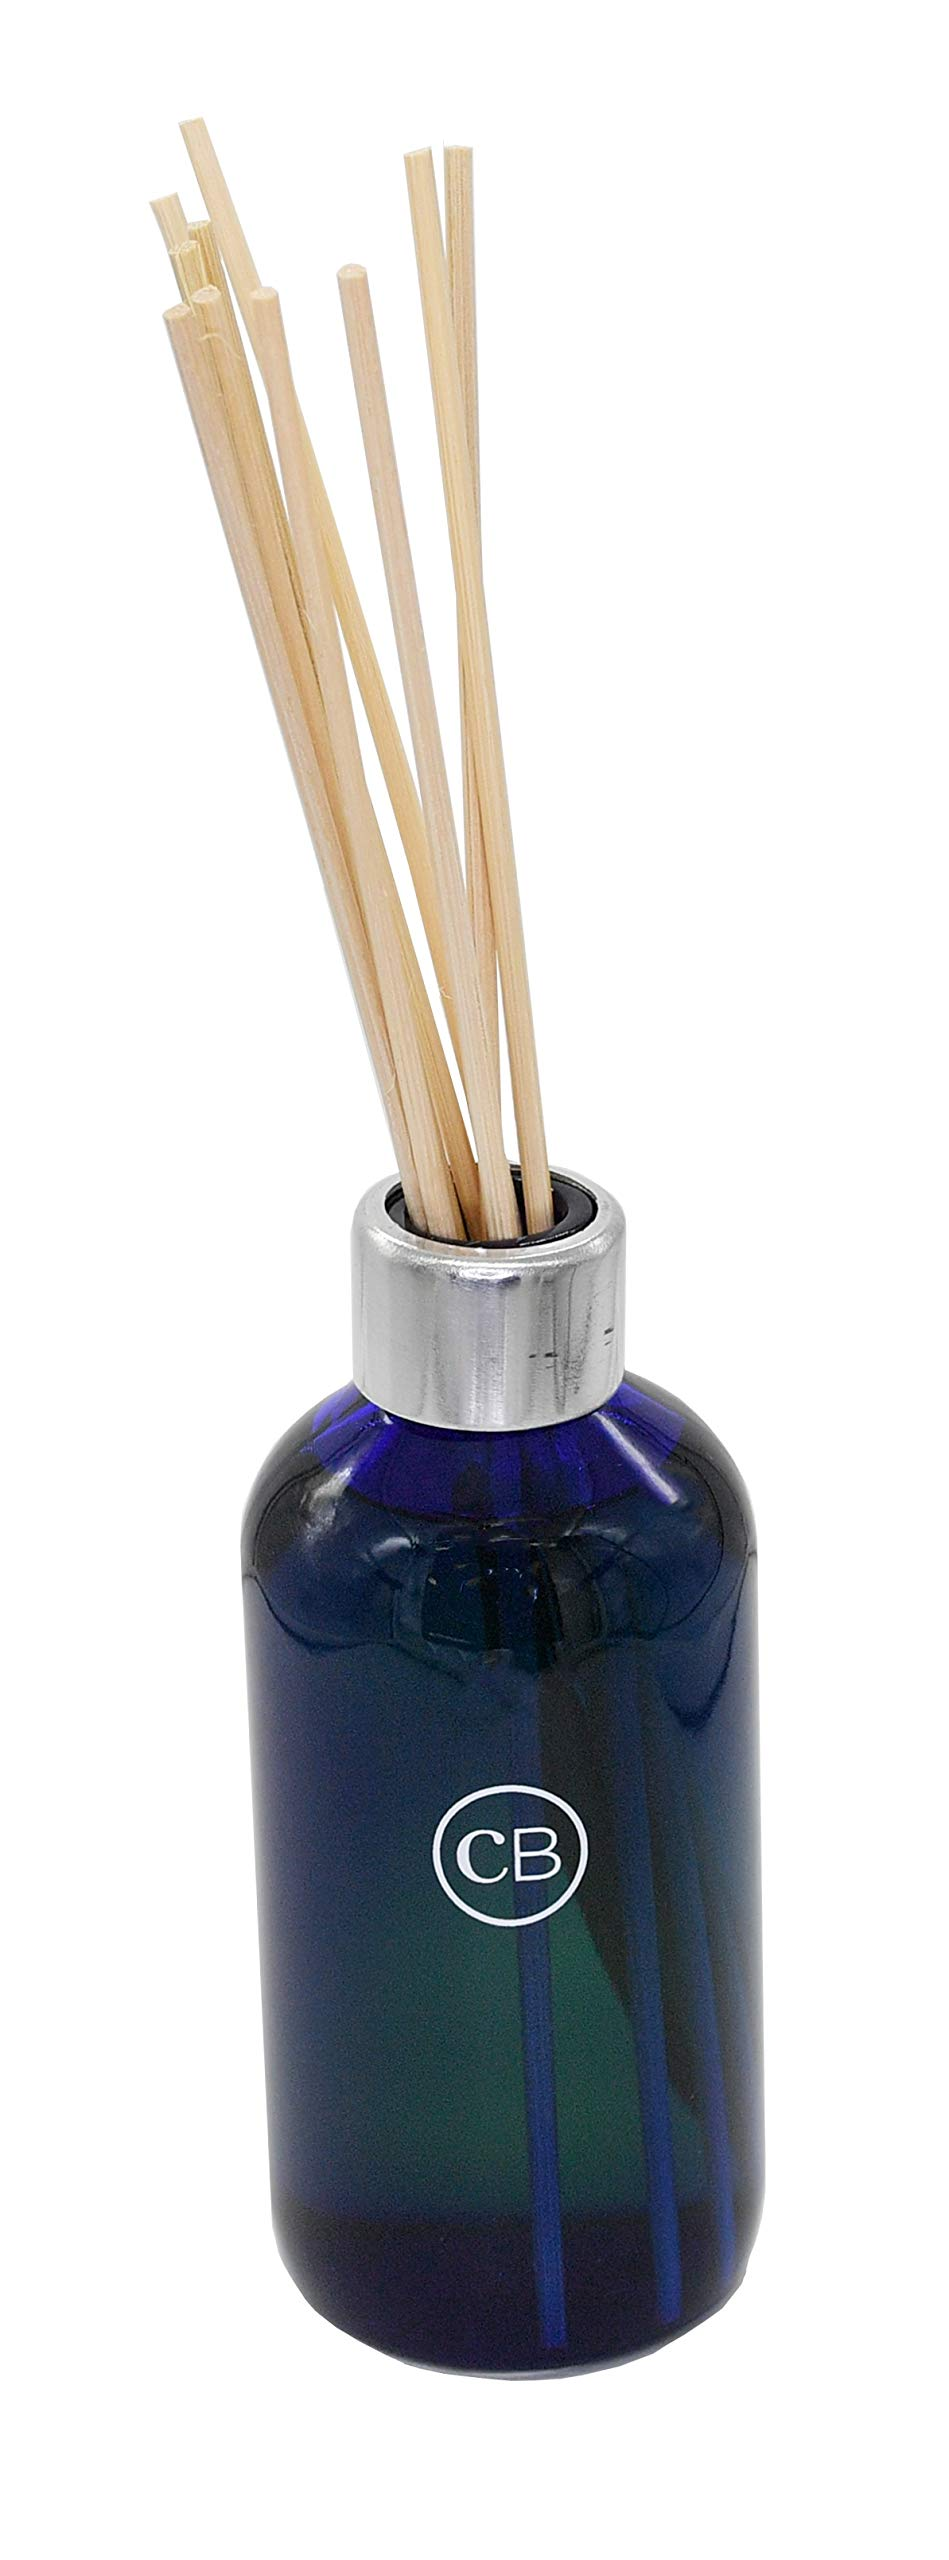 DPM Reed Diffuser Volcano Fragrance Size: 8 Ounce by DPM